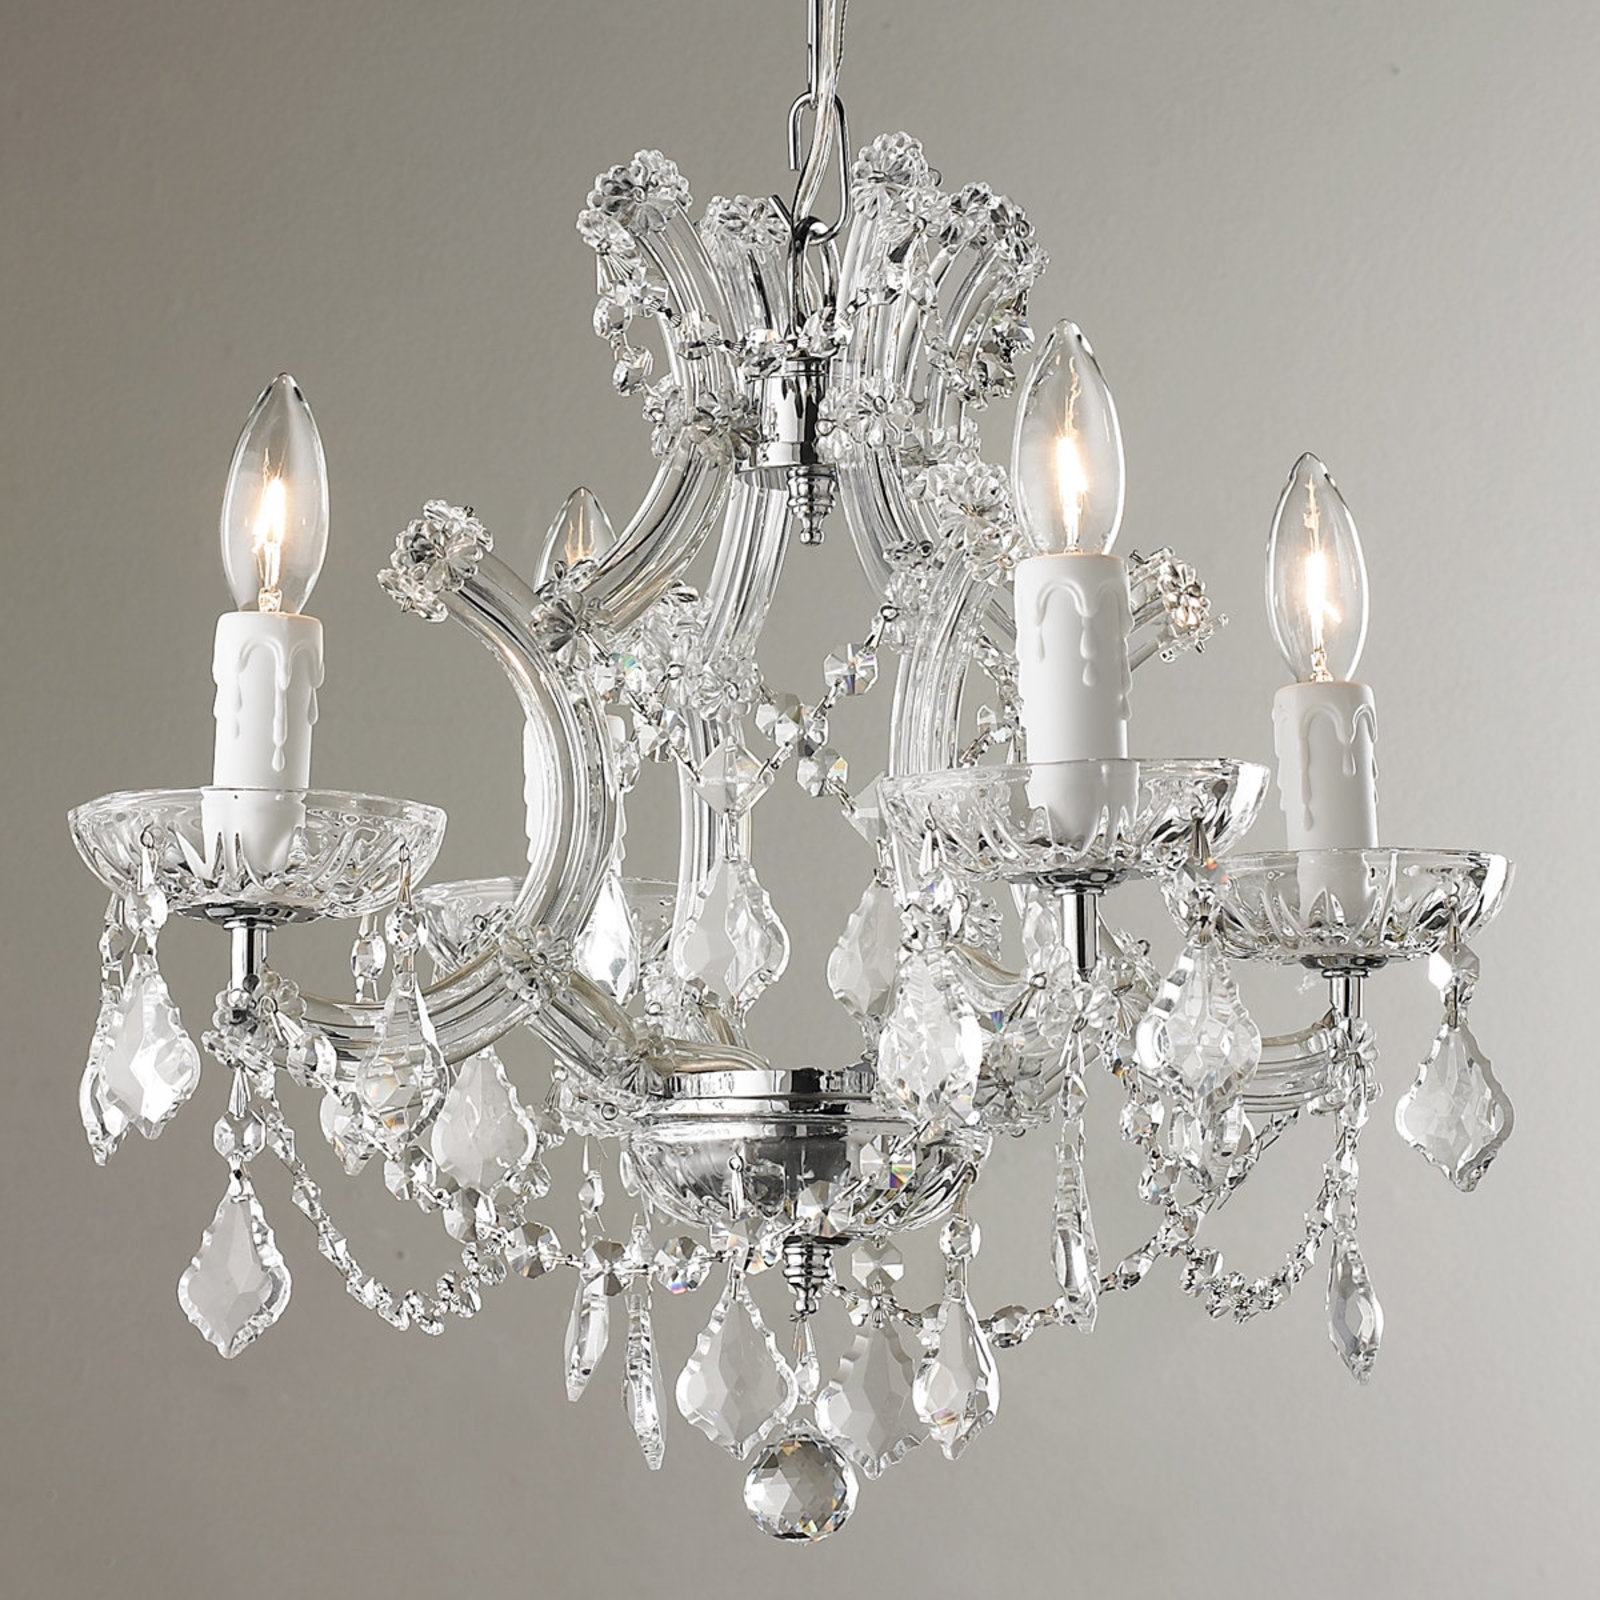 Home Designs With Small Chandeliers – Goodworksfurniture With Regard To Famous Small Chandeliers (View 9 of 20)